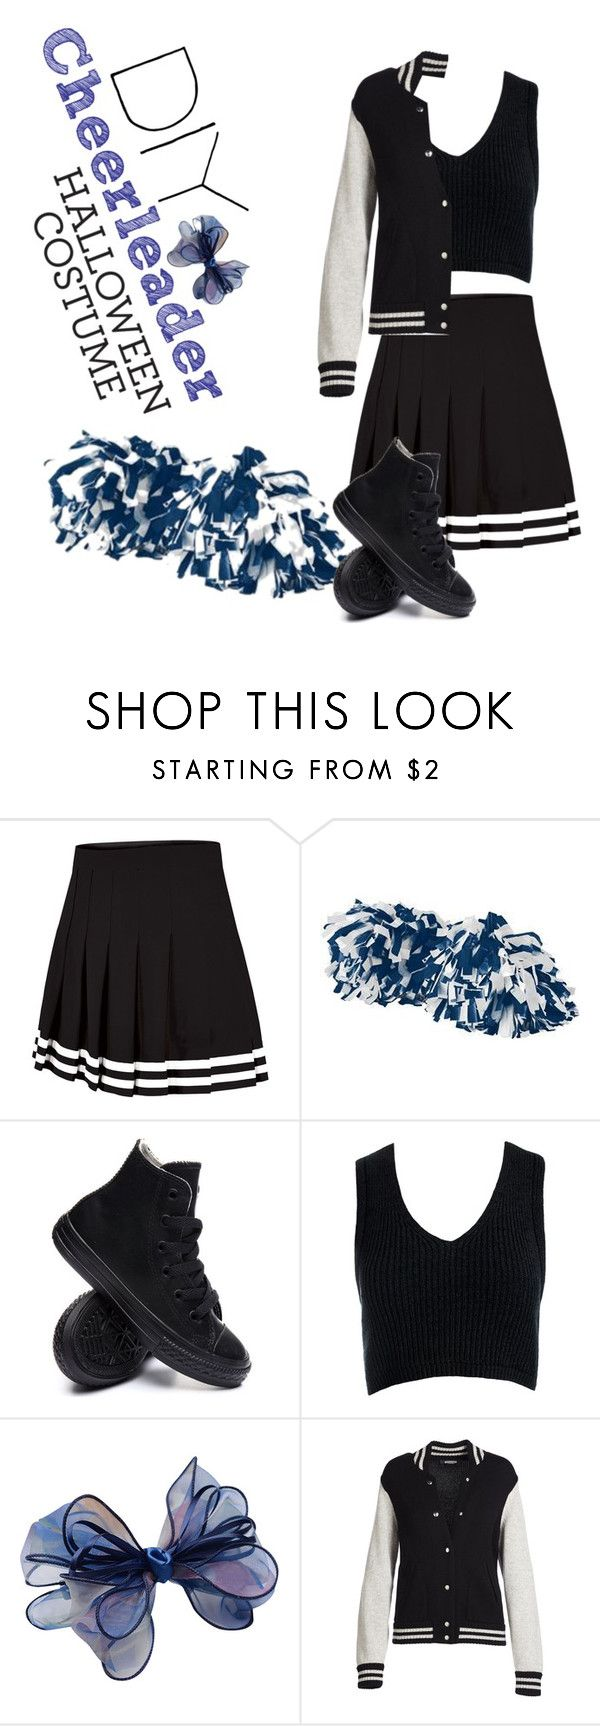 How to Make a Cheerleader Costume